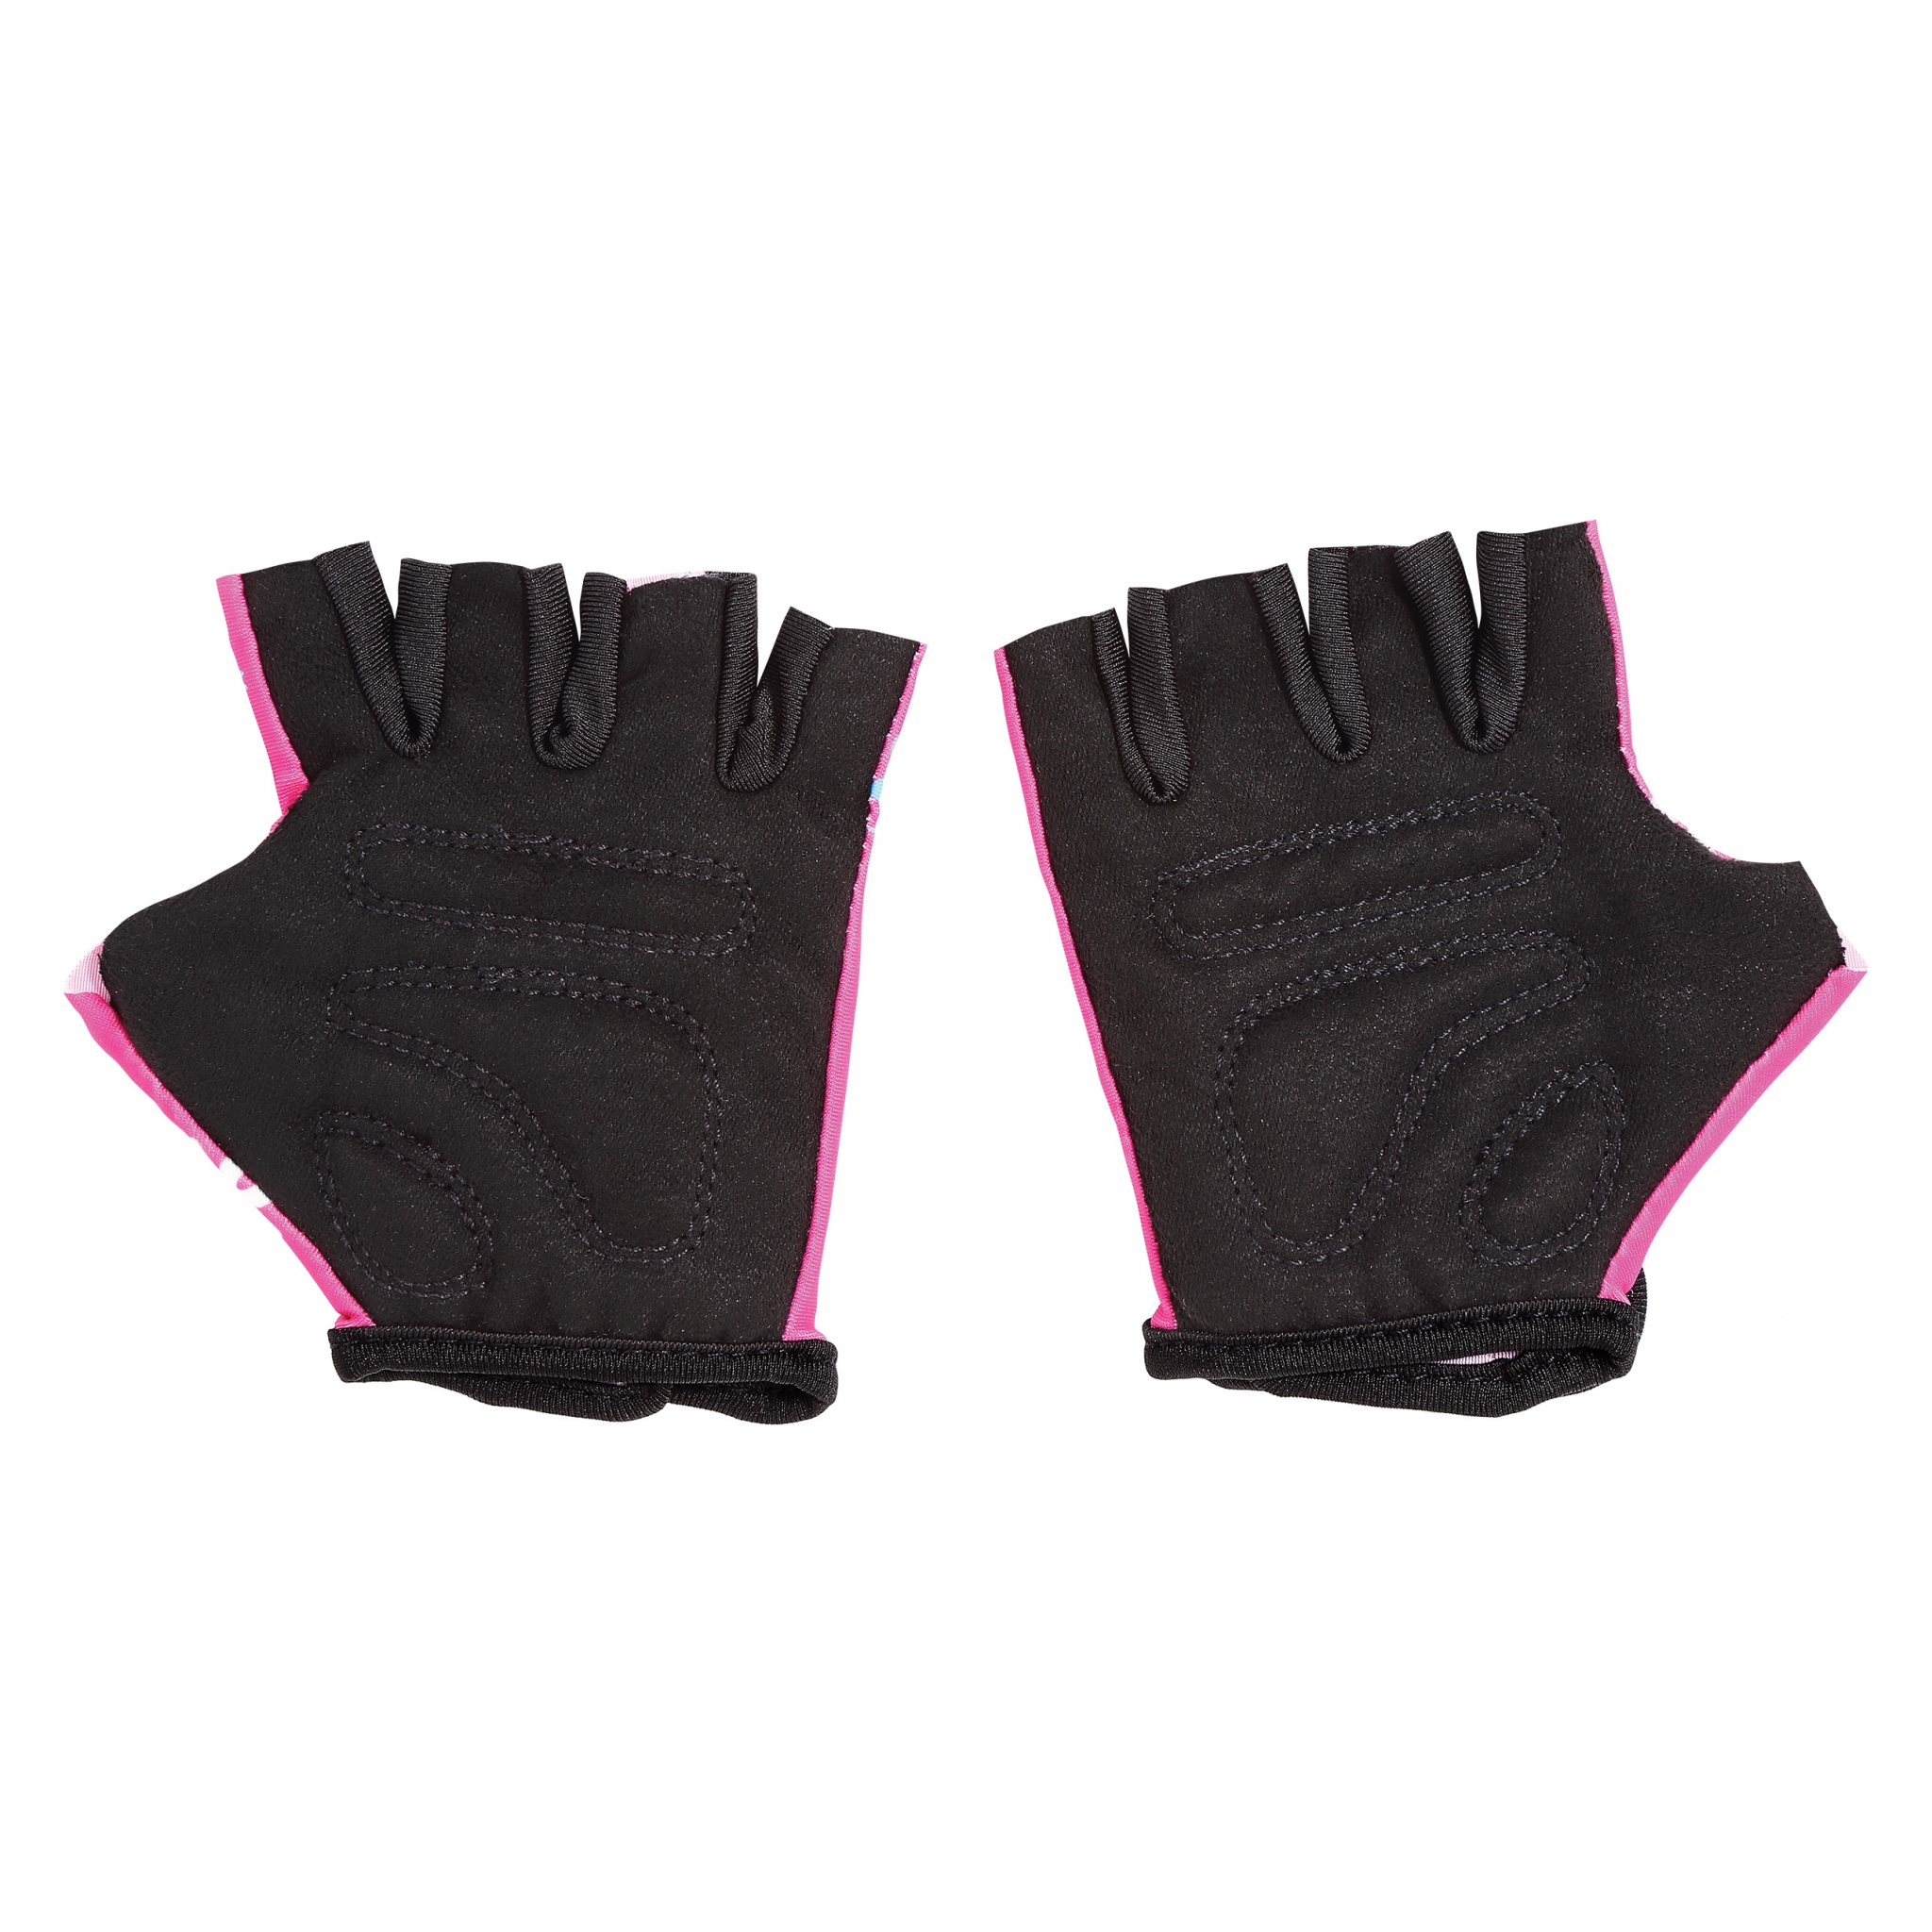 printed scooter gloves for toddlers - Globber 1